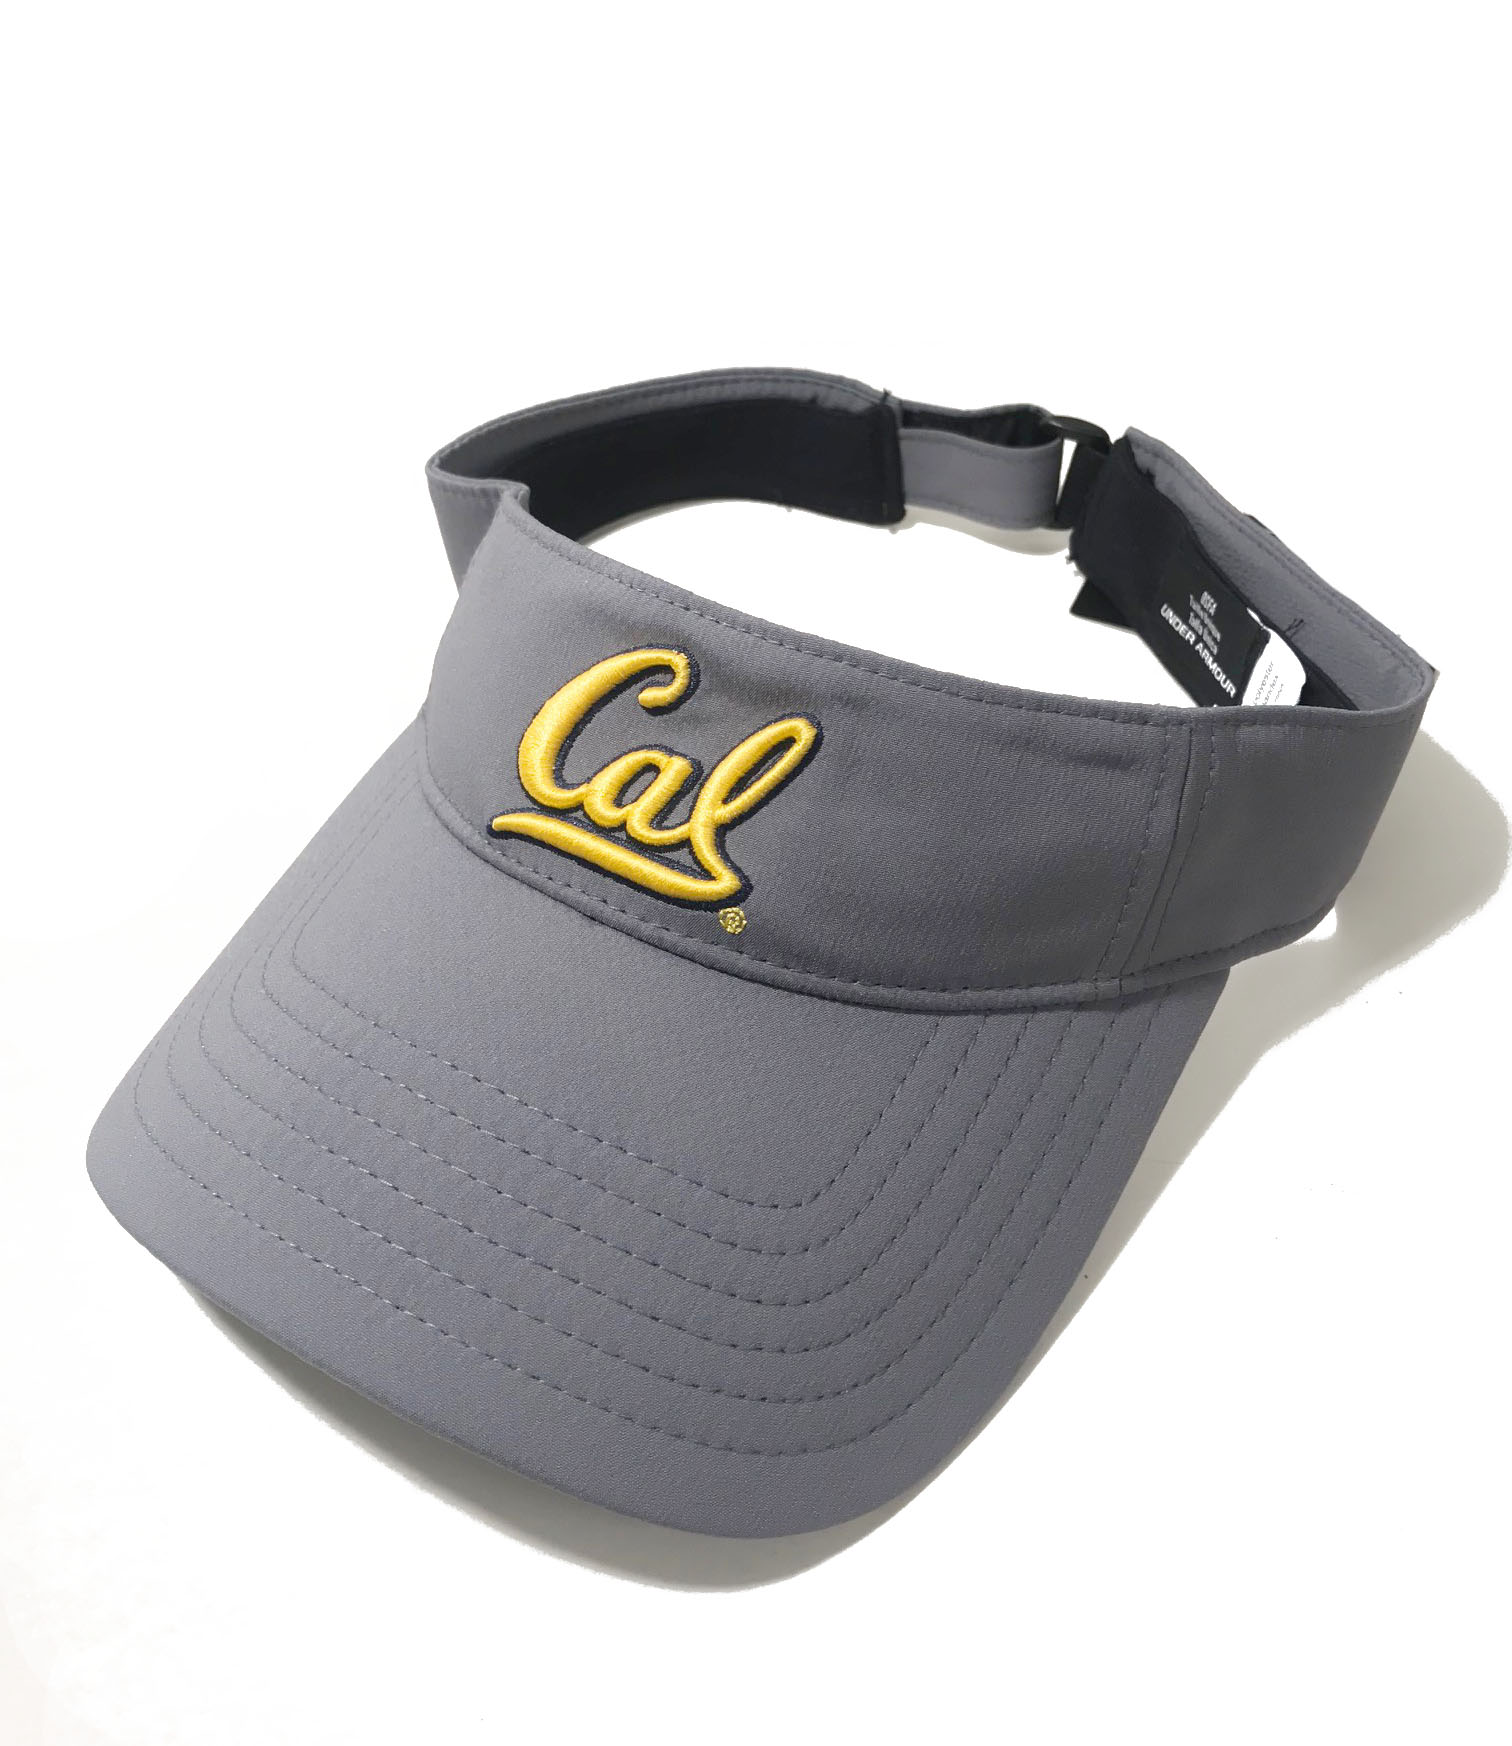 "Under Armour Renegade Visor ""Cal""-Graphite"